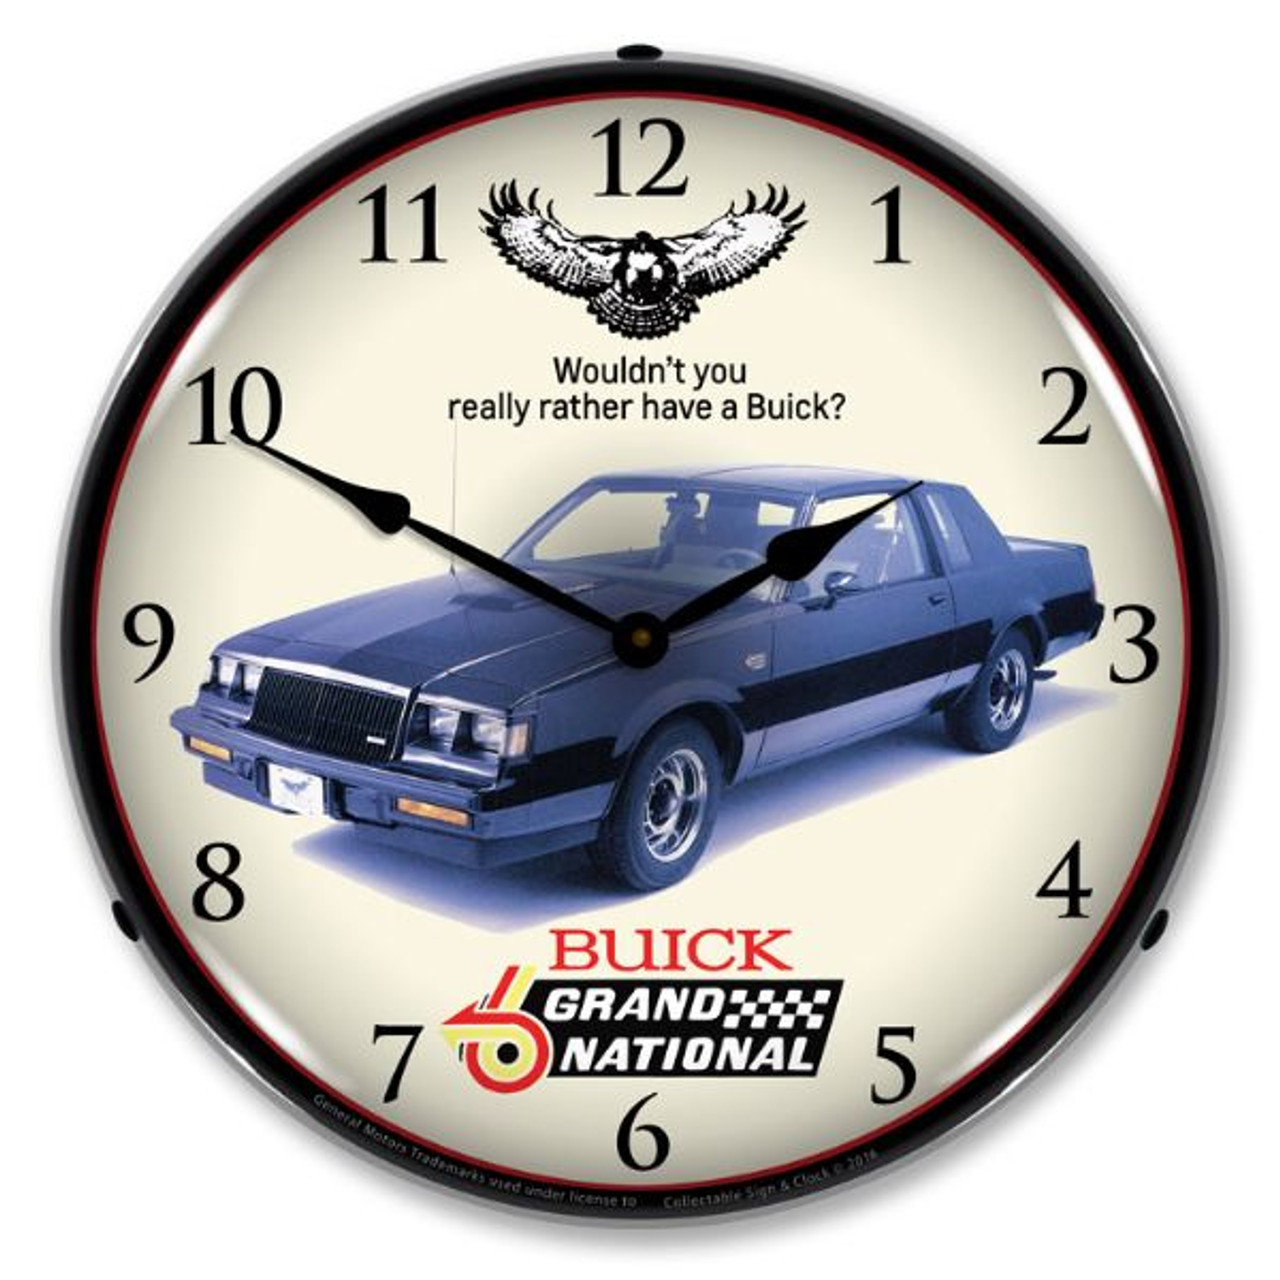 1987 Buick Grand National Lighted Wall Clock 14 x 14 Inches